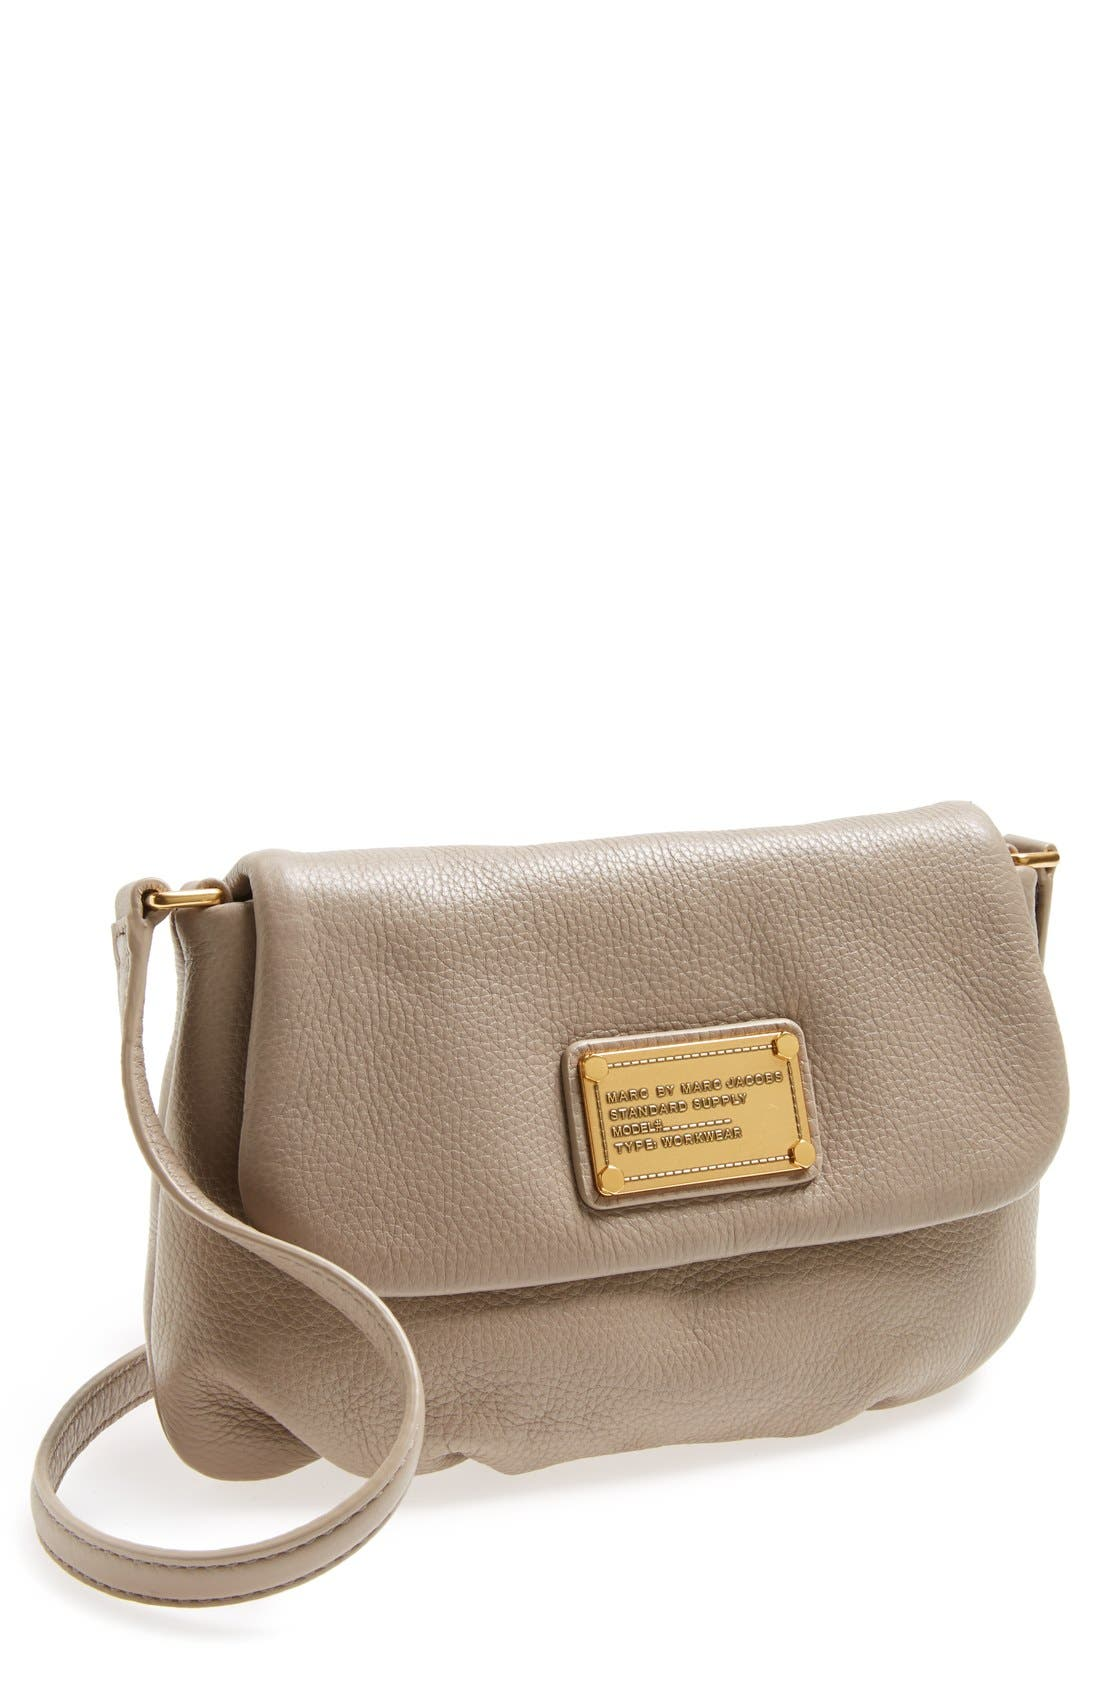 Alternate Image 1 Selected - MARC BY MARC JACOBS 'Classic Q - Flap Percy' Satchel